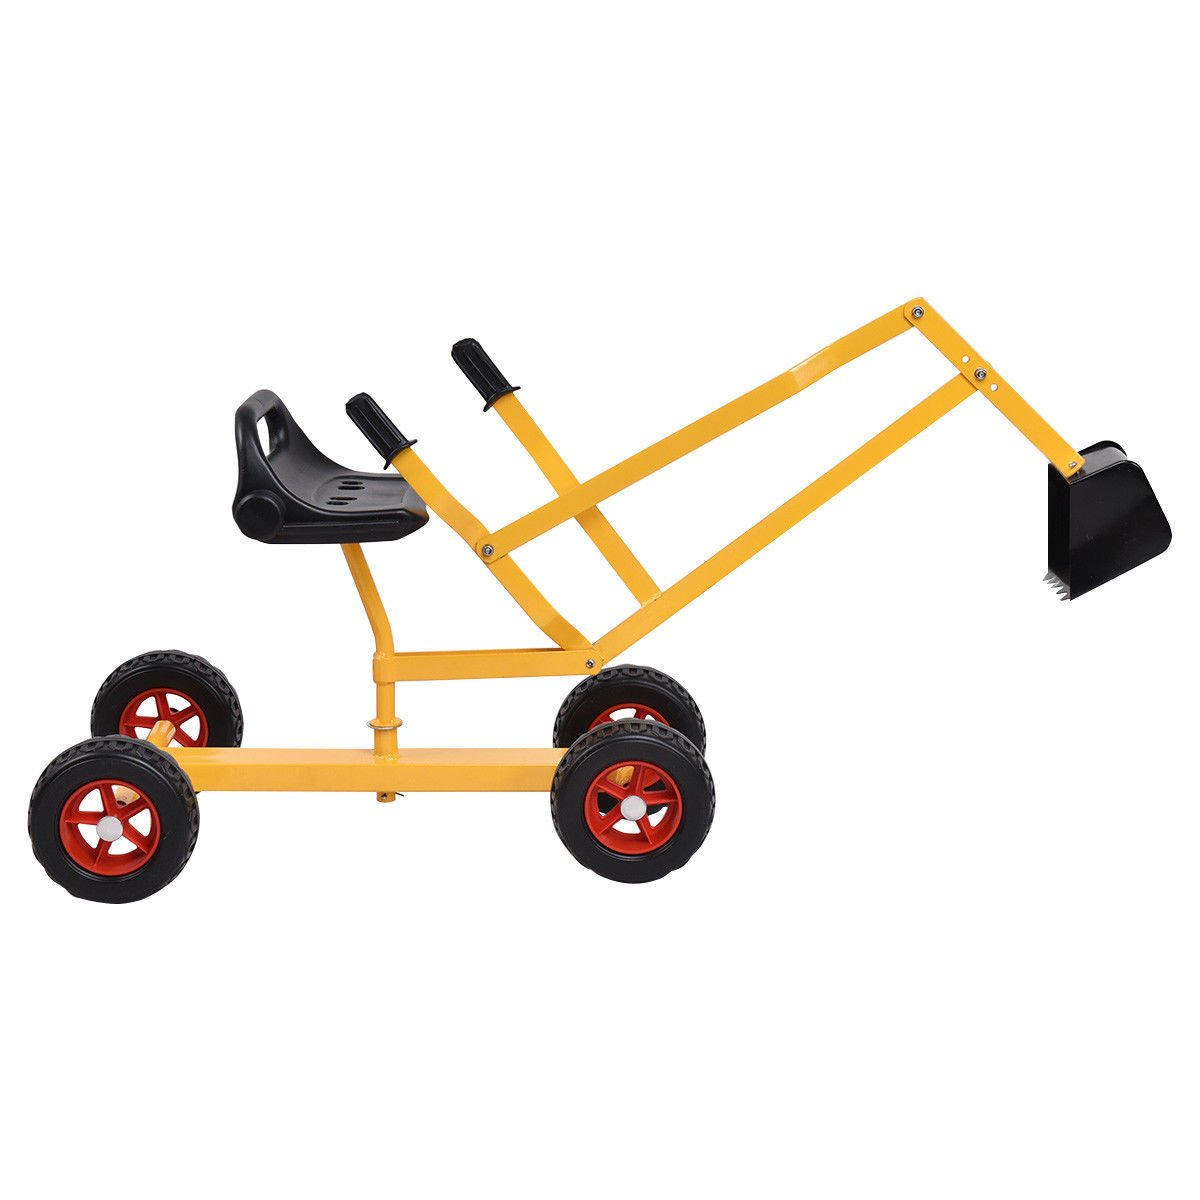 Costzon Sand Digger, Outdoor Sandbox Toy, Full 360 Degrees Rotatable Seat, Heavy Duty Metal Digging Scooper Excavator with 4 Wheels for Kids